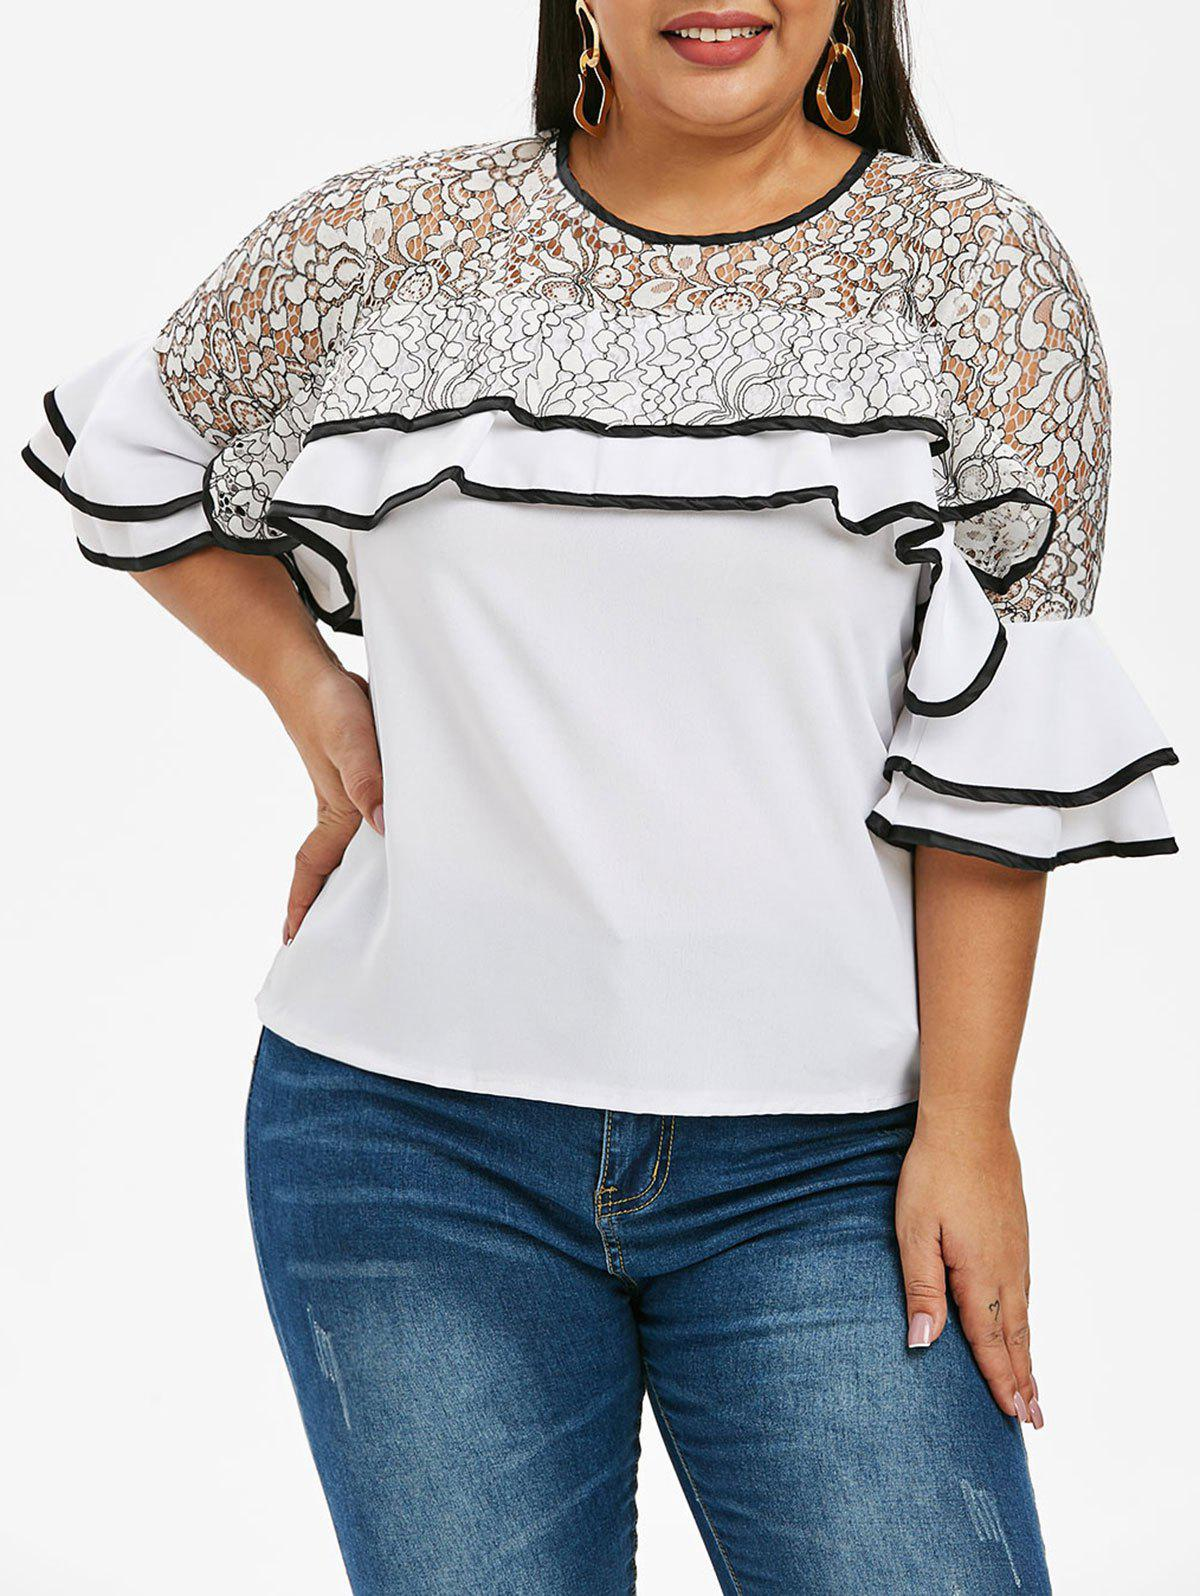 d3d95305a8e 32% OFF   2019 Plus Size Bell Sleeve Lace Panel Ruffled Blouse ...